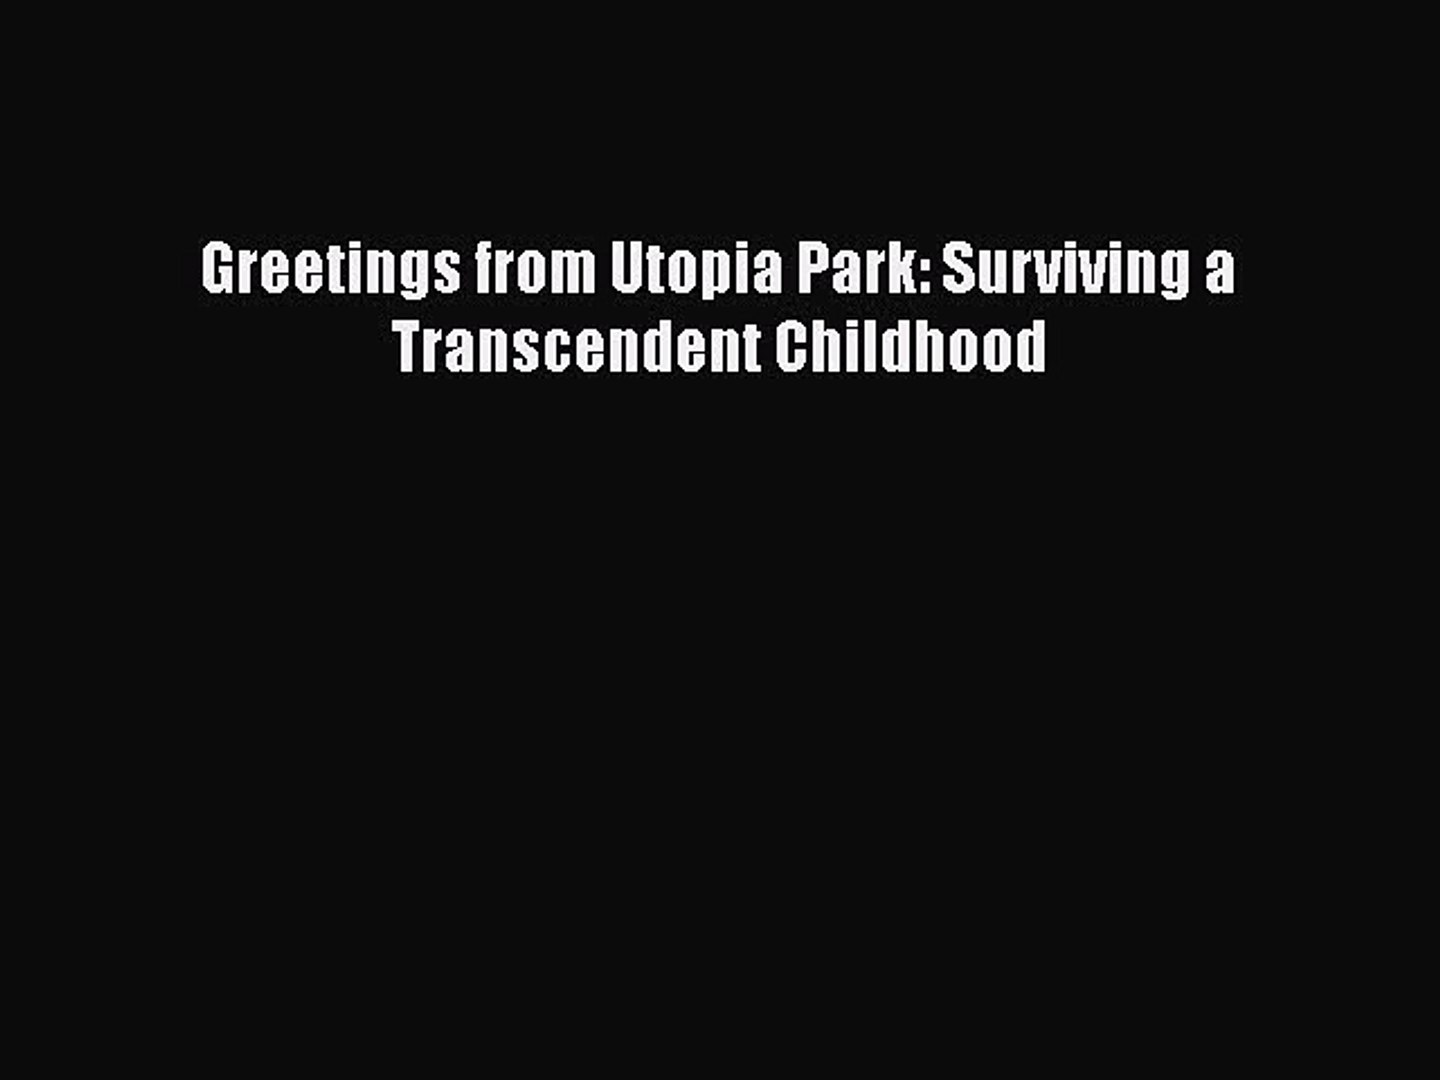 Surviving a Transcendent Childhood Greetings from Utopia Park